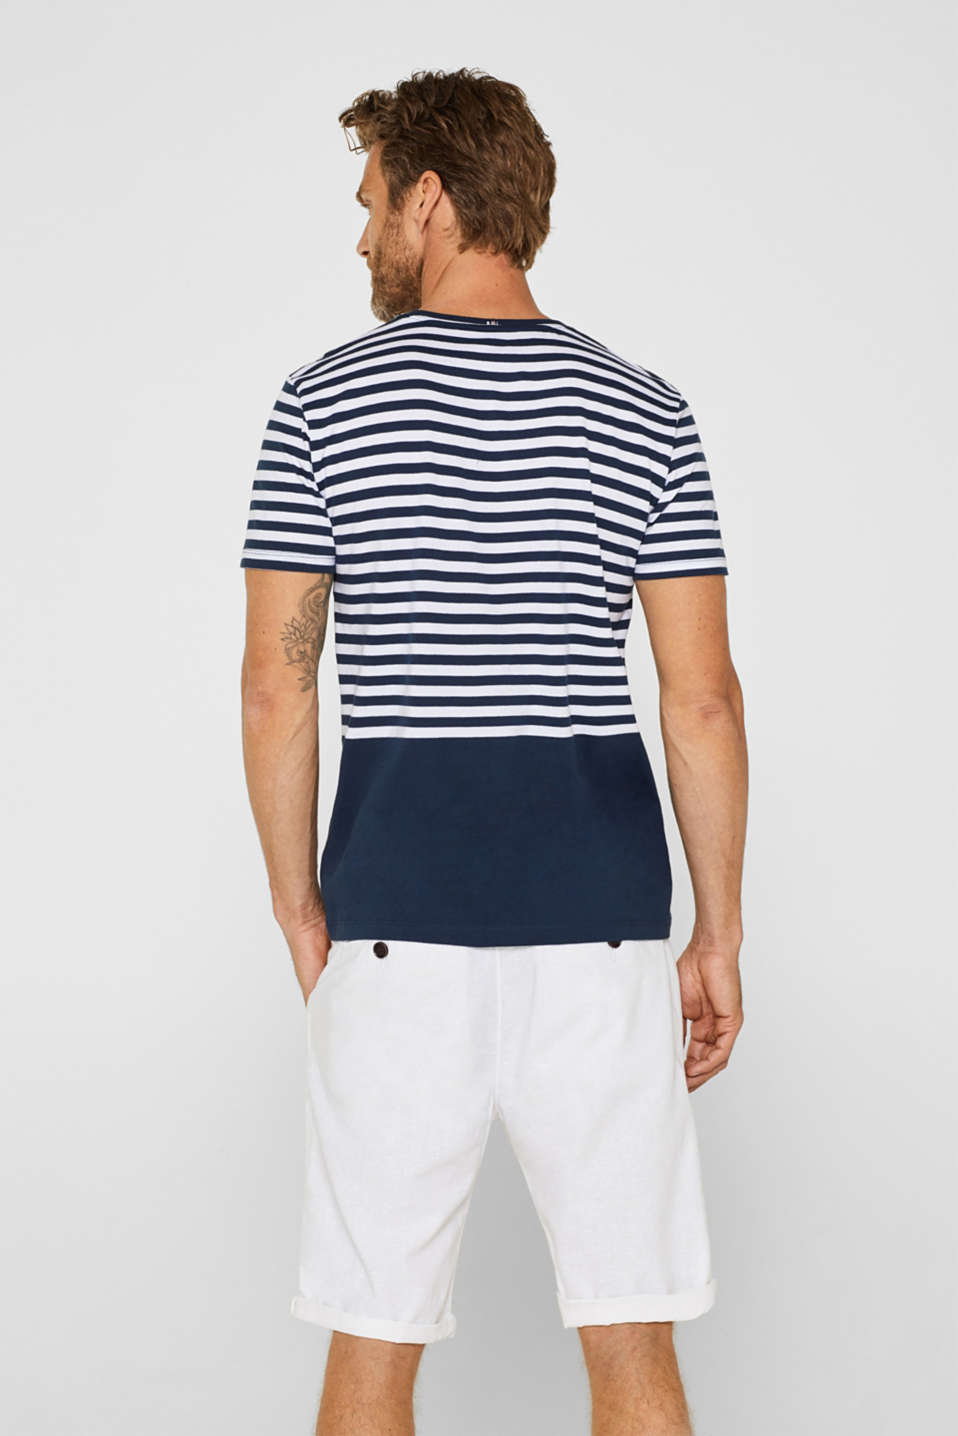 Jersey T-shirt with stripes, 100% cotton, NAVY, detail image number 3